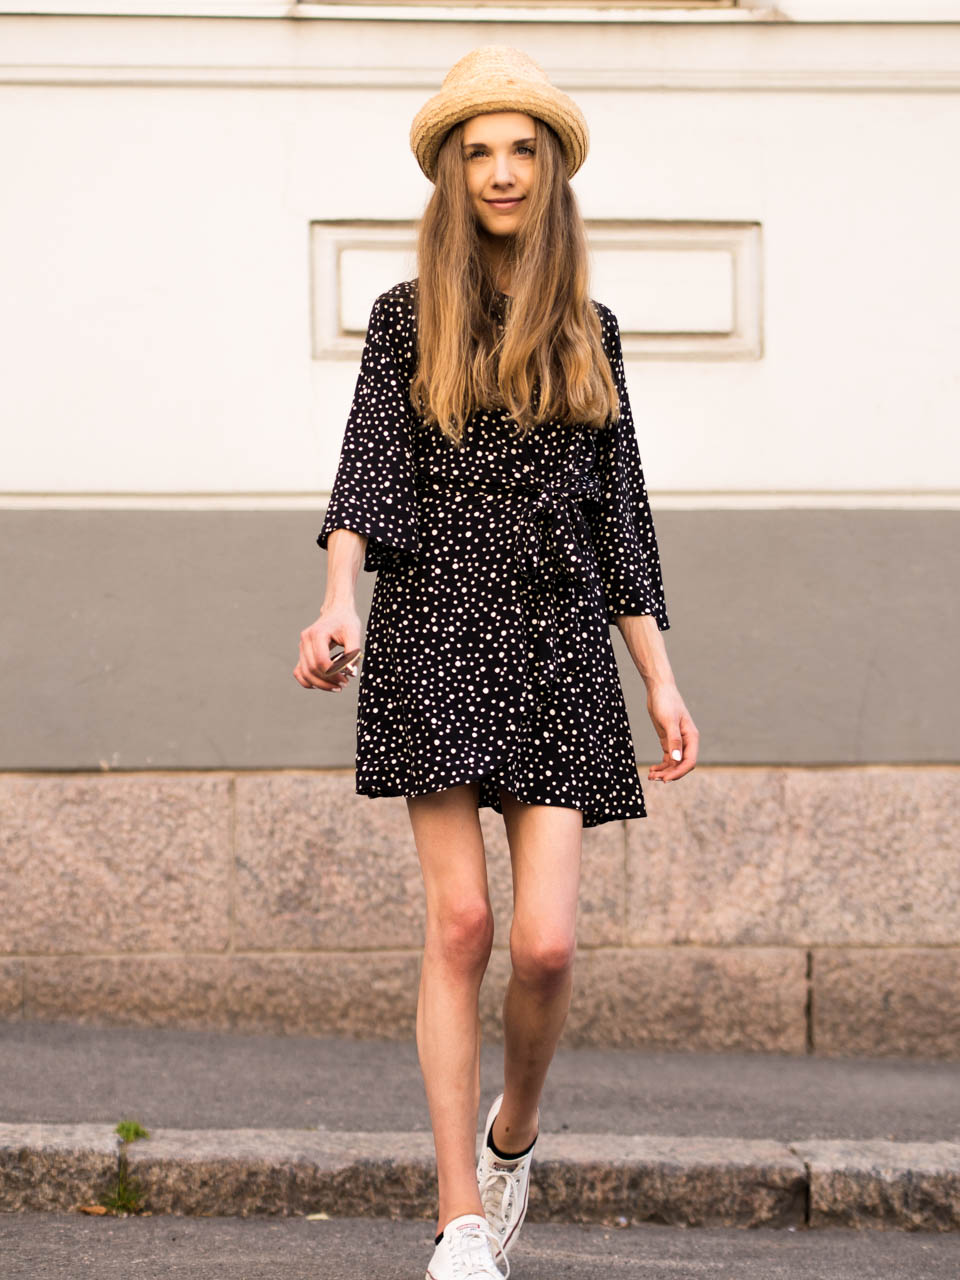 fashion-blogger-summer-style-polka-dot-dress